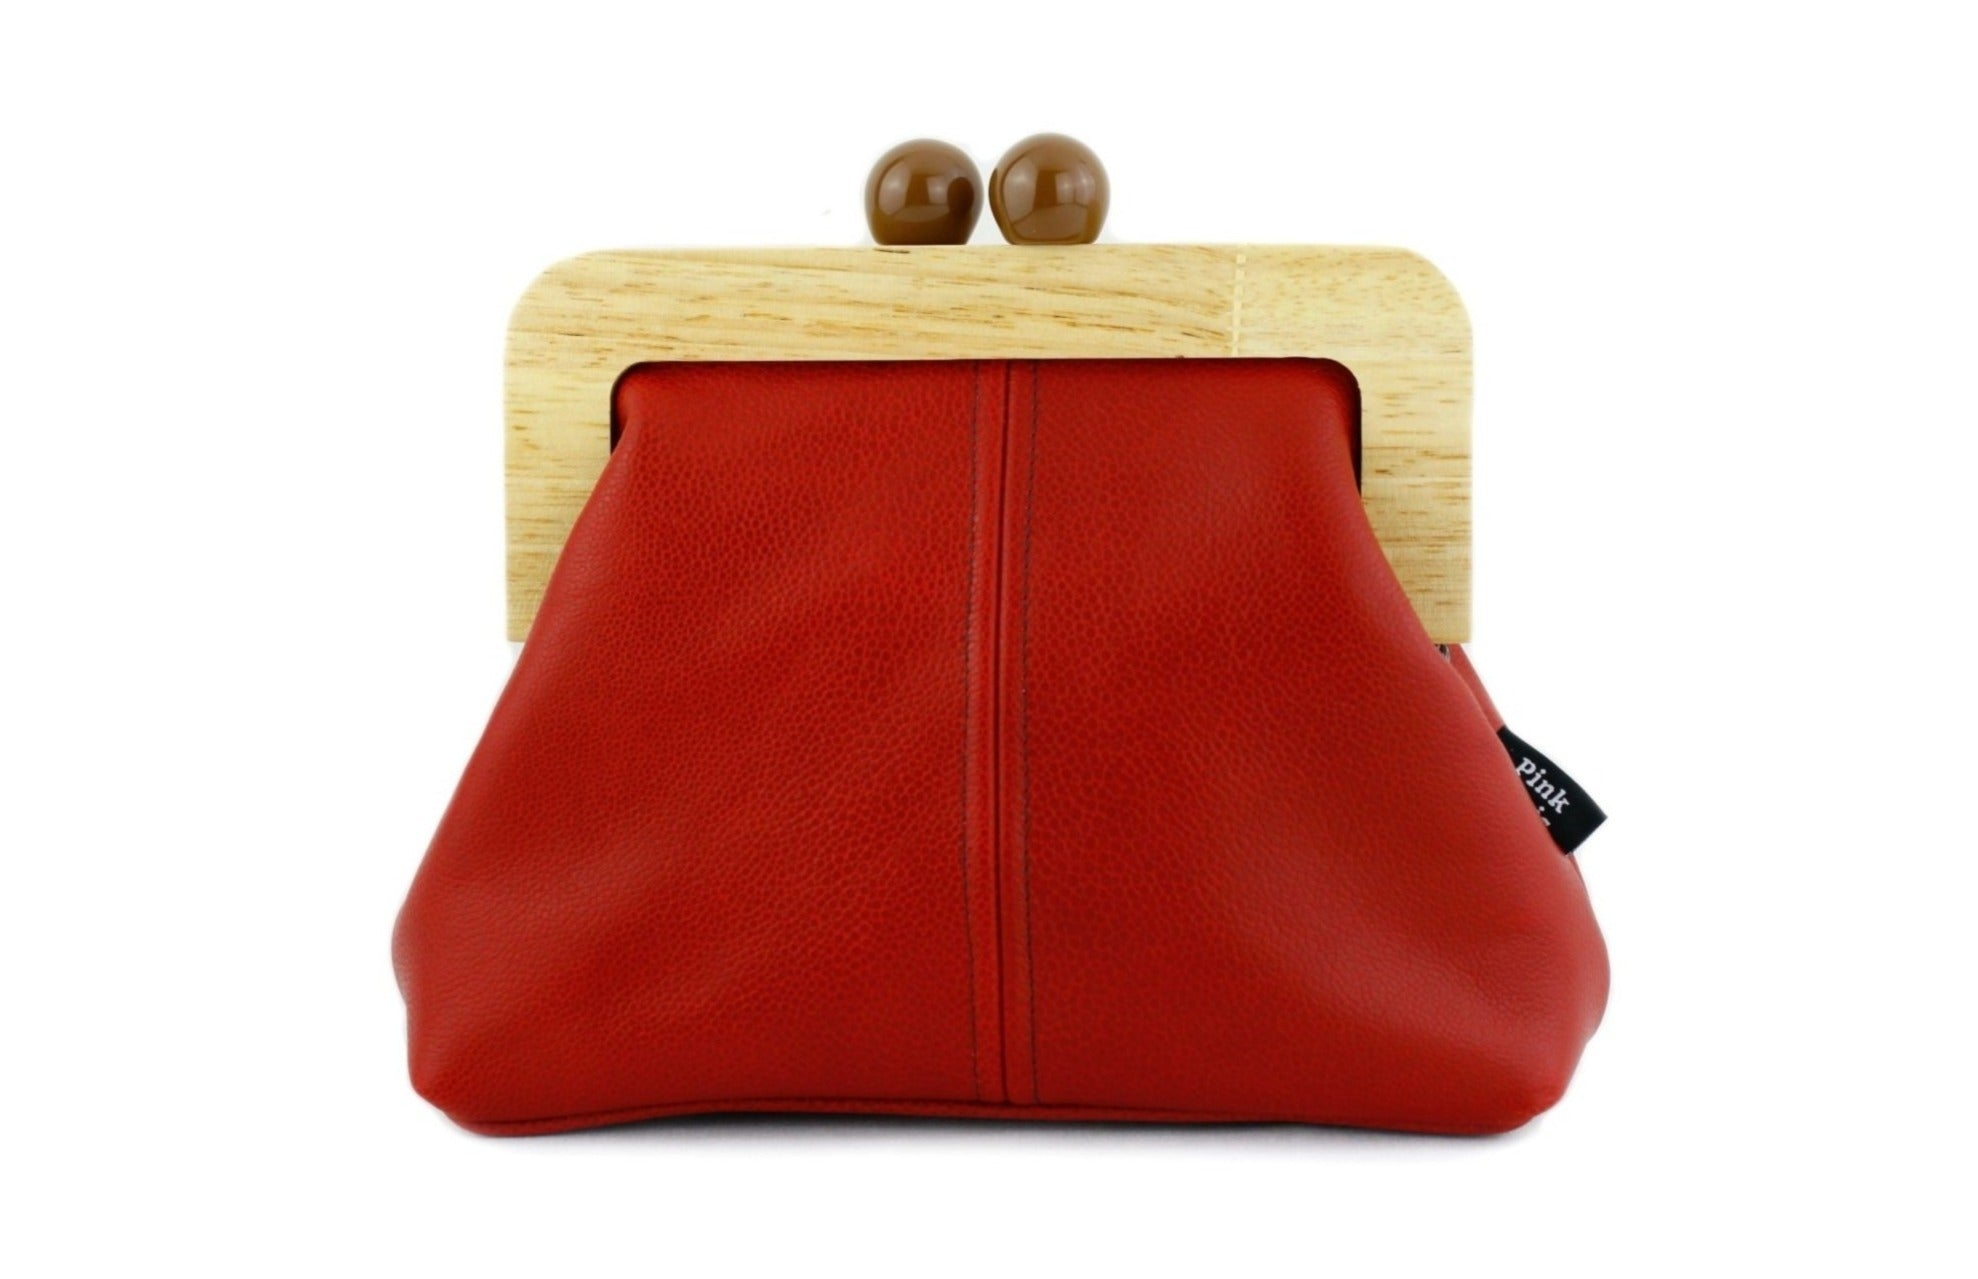 Crimson Red Genuine Leather Clutch Bag with Leather Strap | PINKOASIS